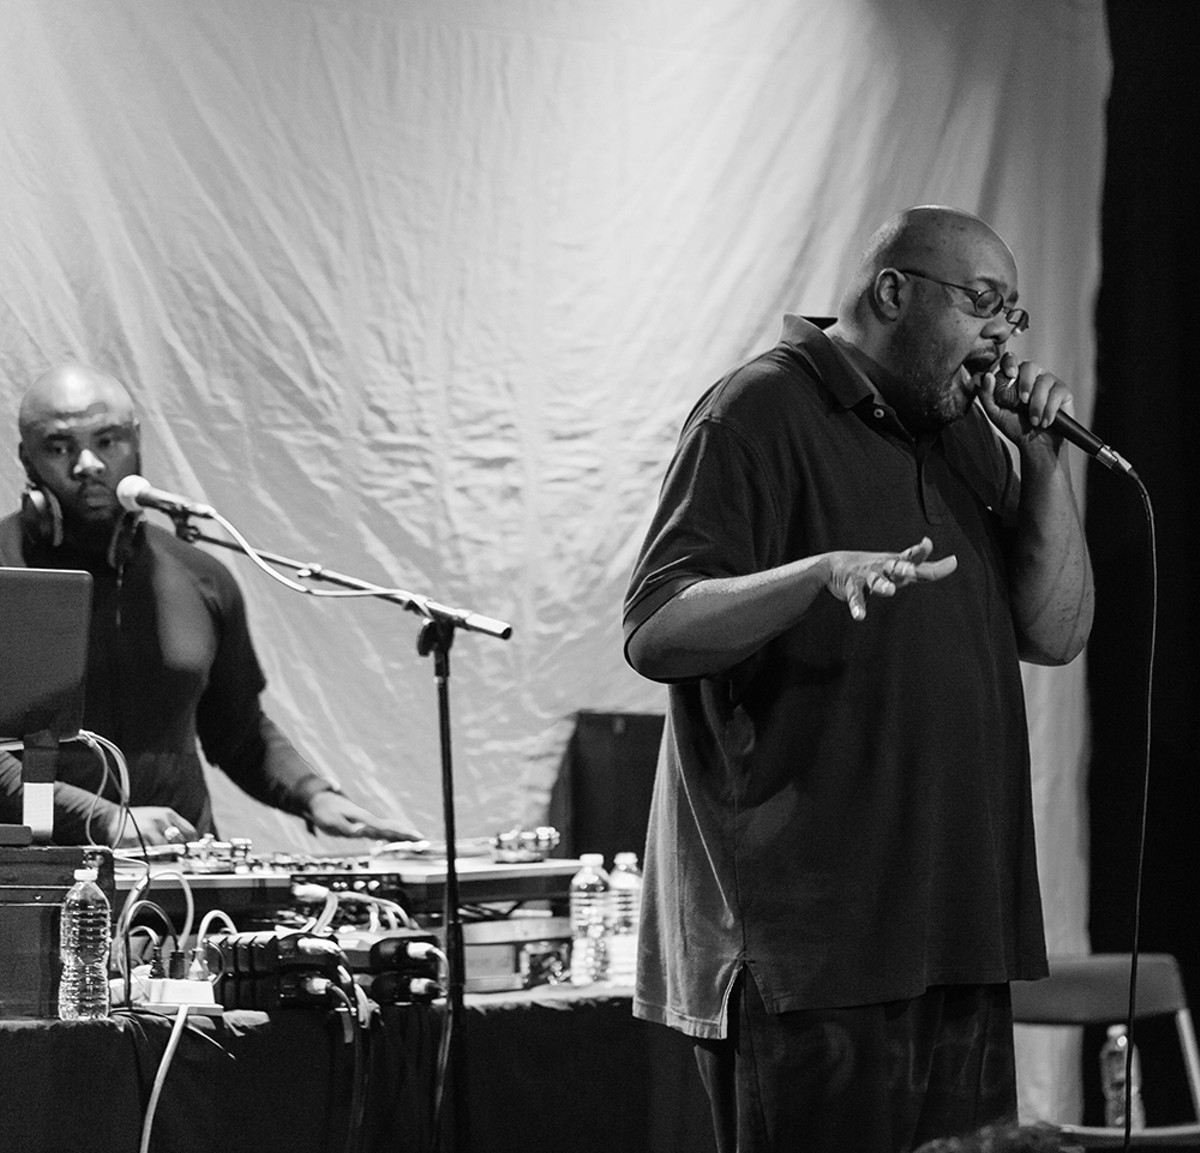 1000w_8-19_col_underground_blackalicious_photo_by_chris_gaor.jpg